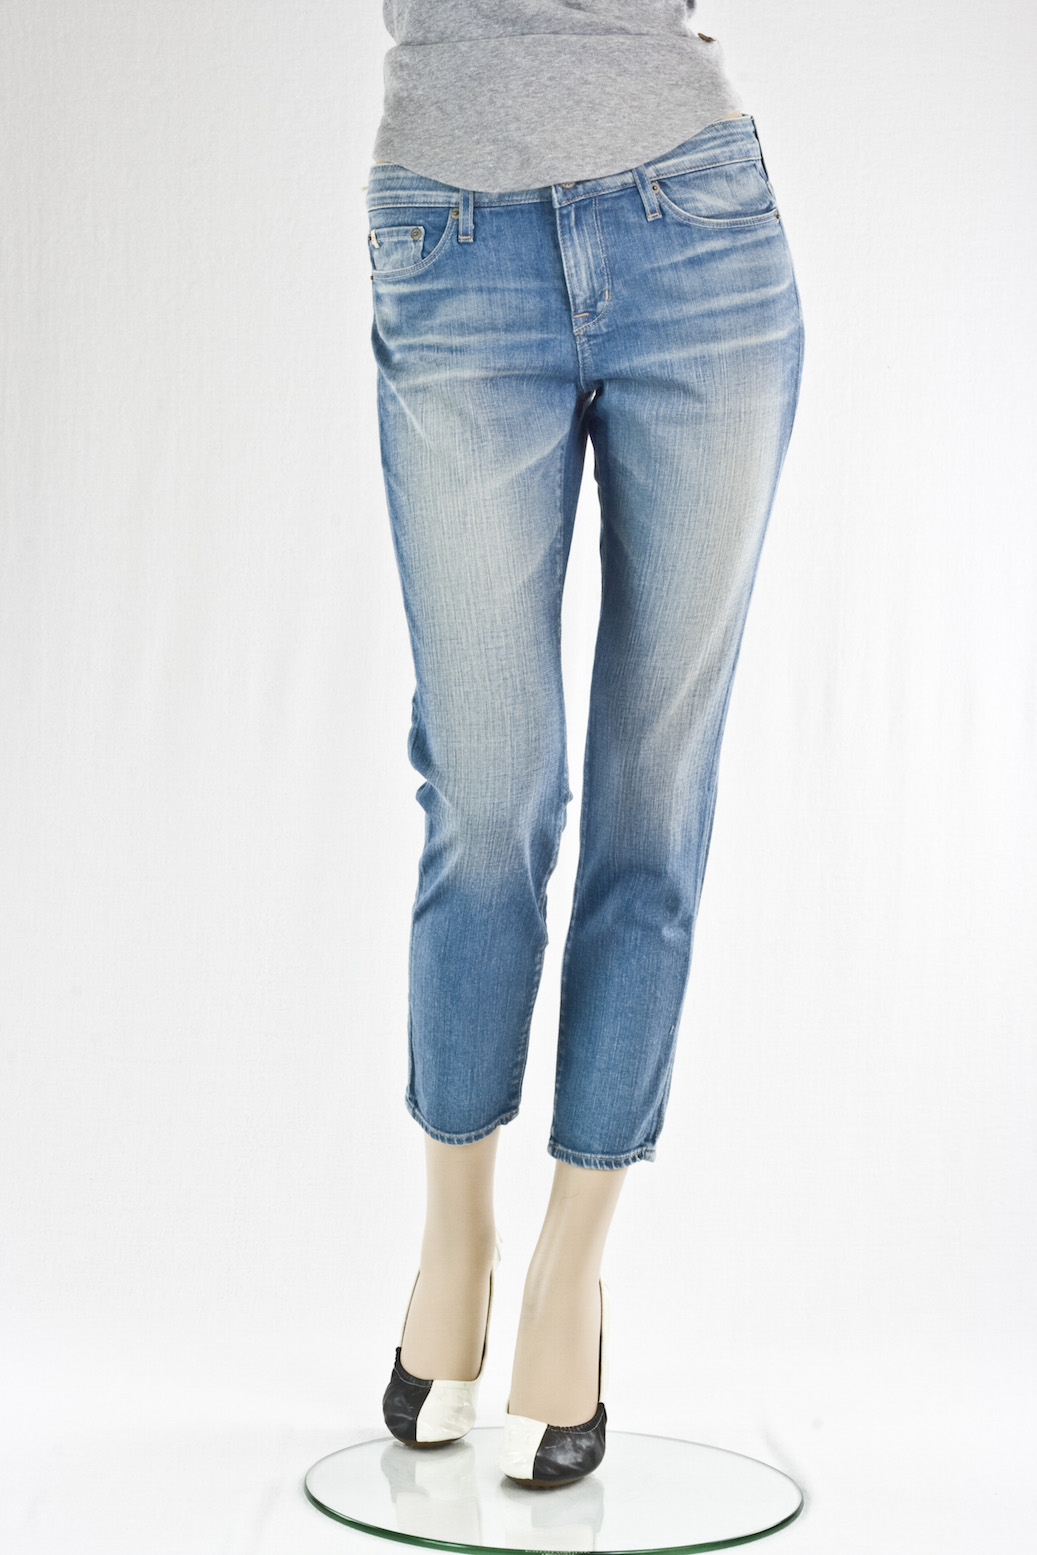 "Женские джинсы Big Star ""Скини"" Alex mid rise skinny light интернет-магазин Fashion Jeans"